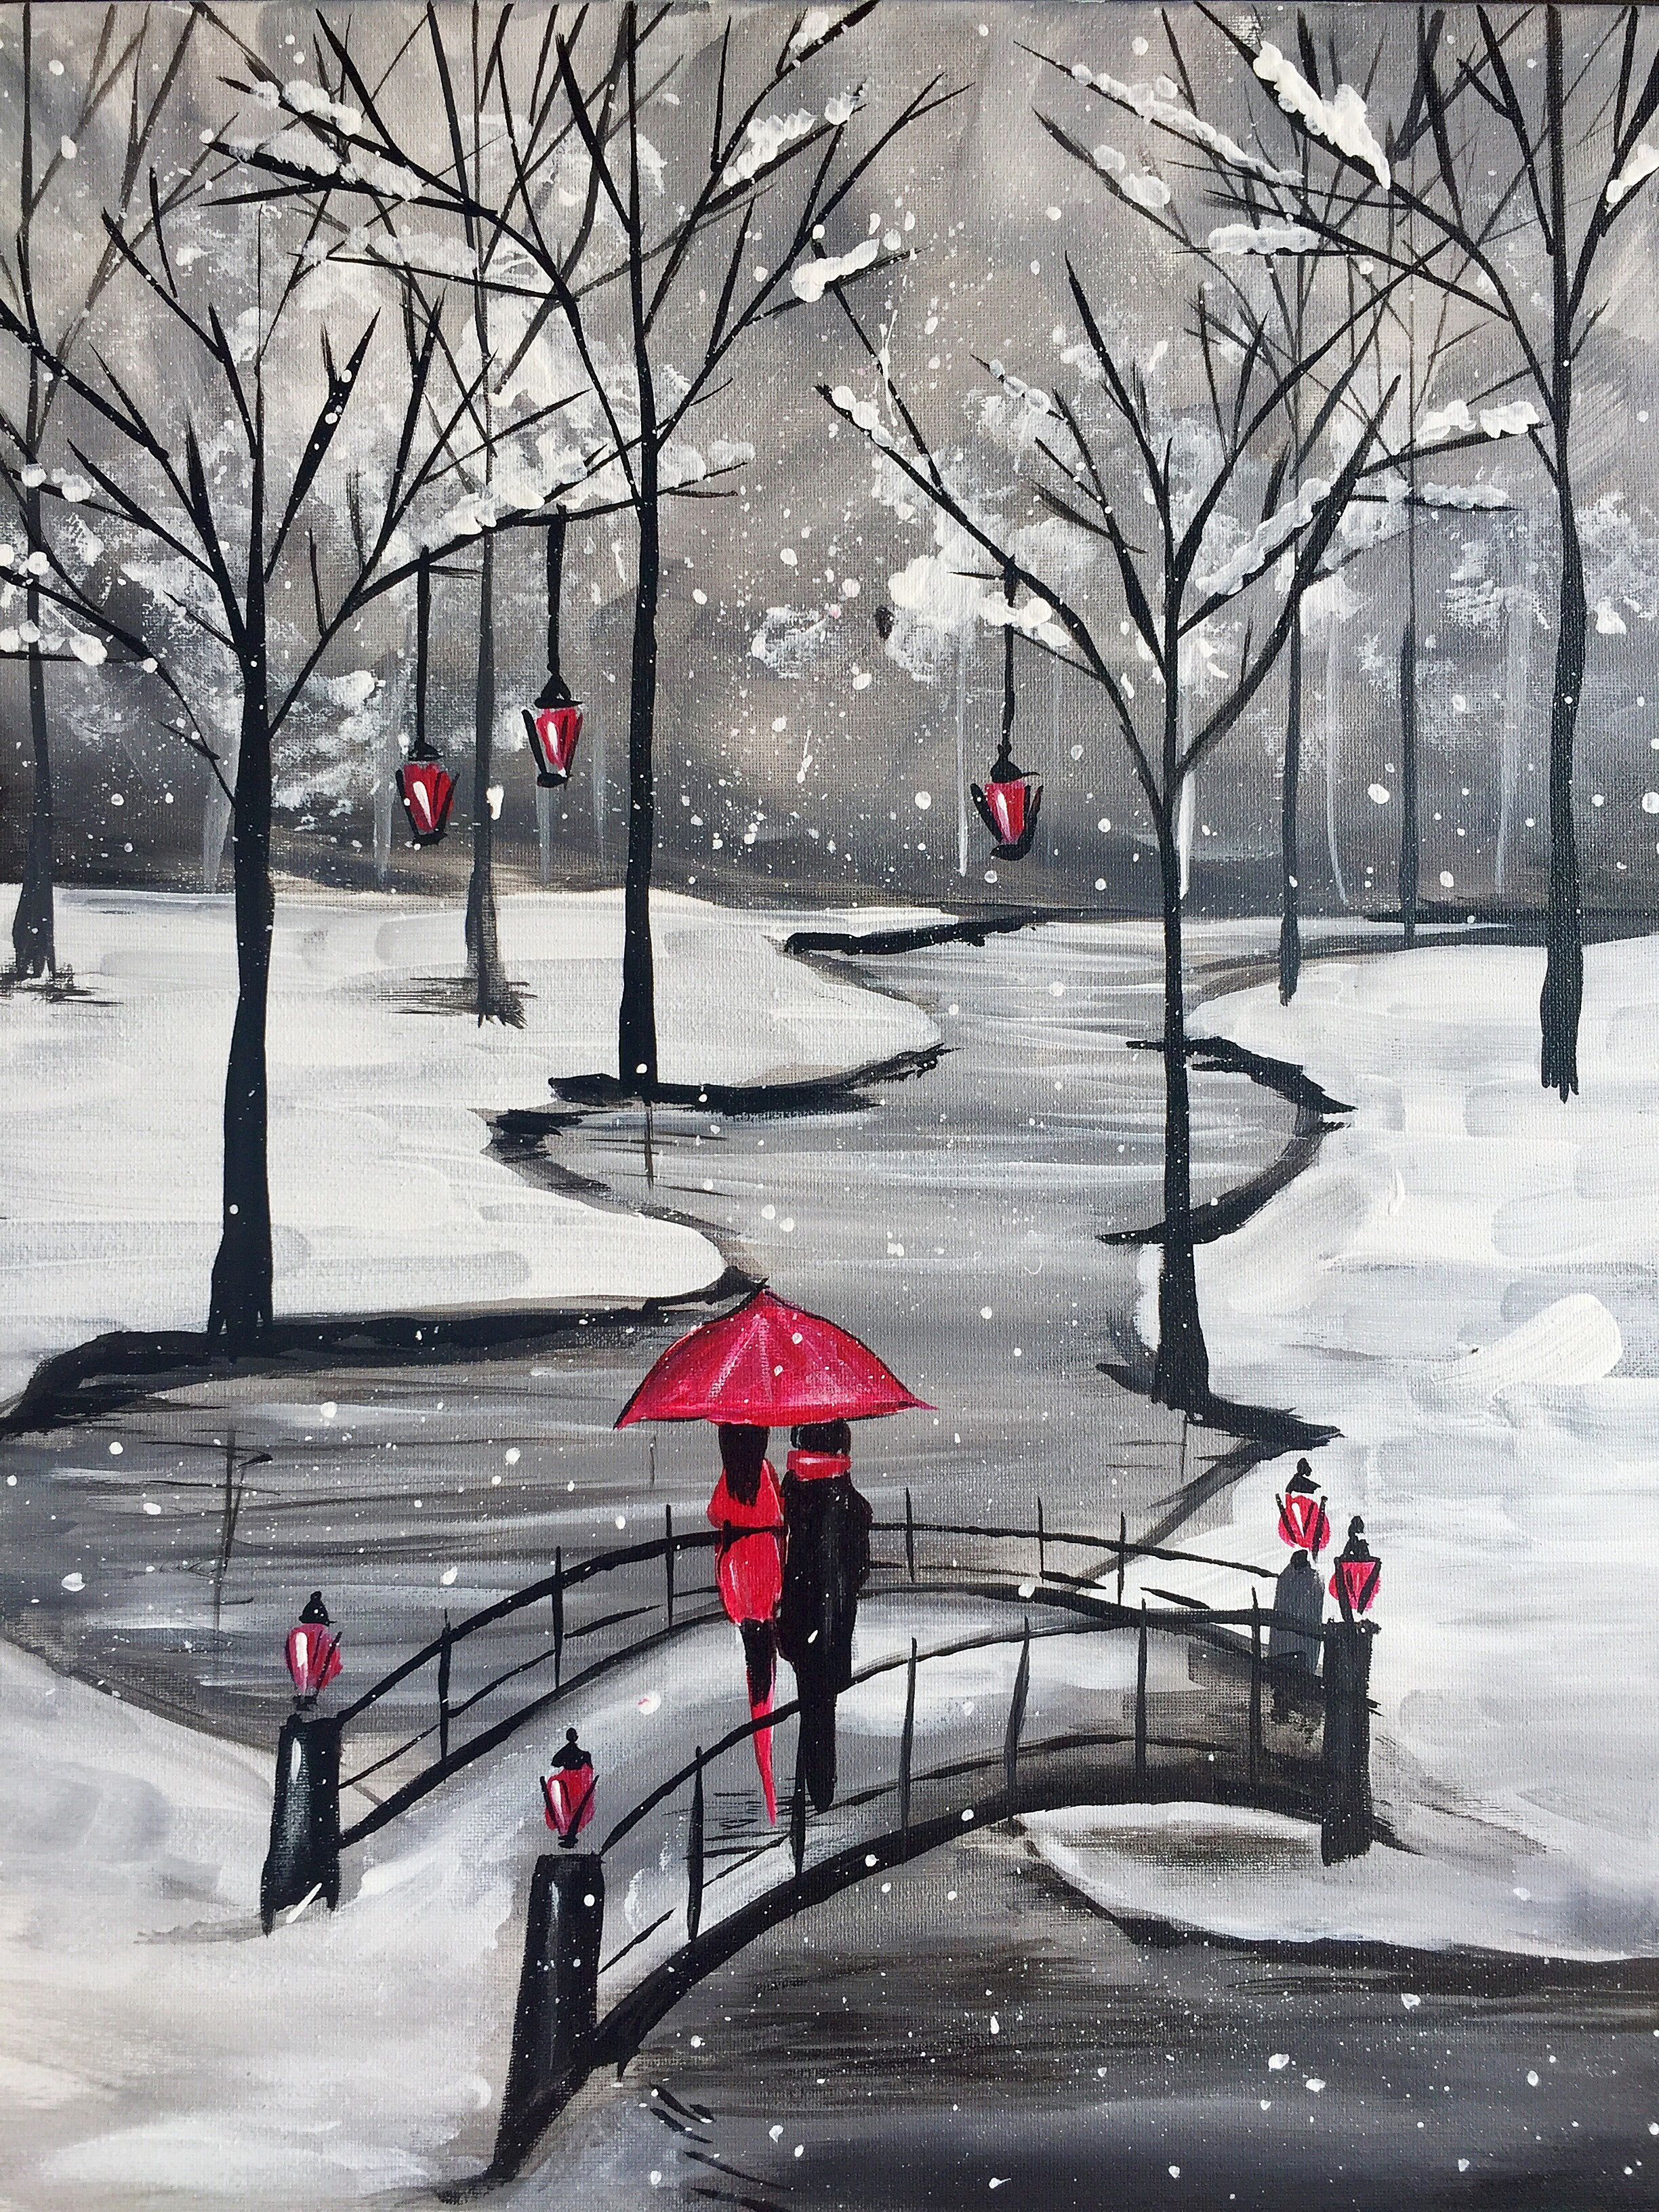 Join us for a Paint Nite event Wed Nov 22, 2017 at 101